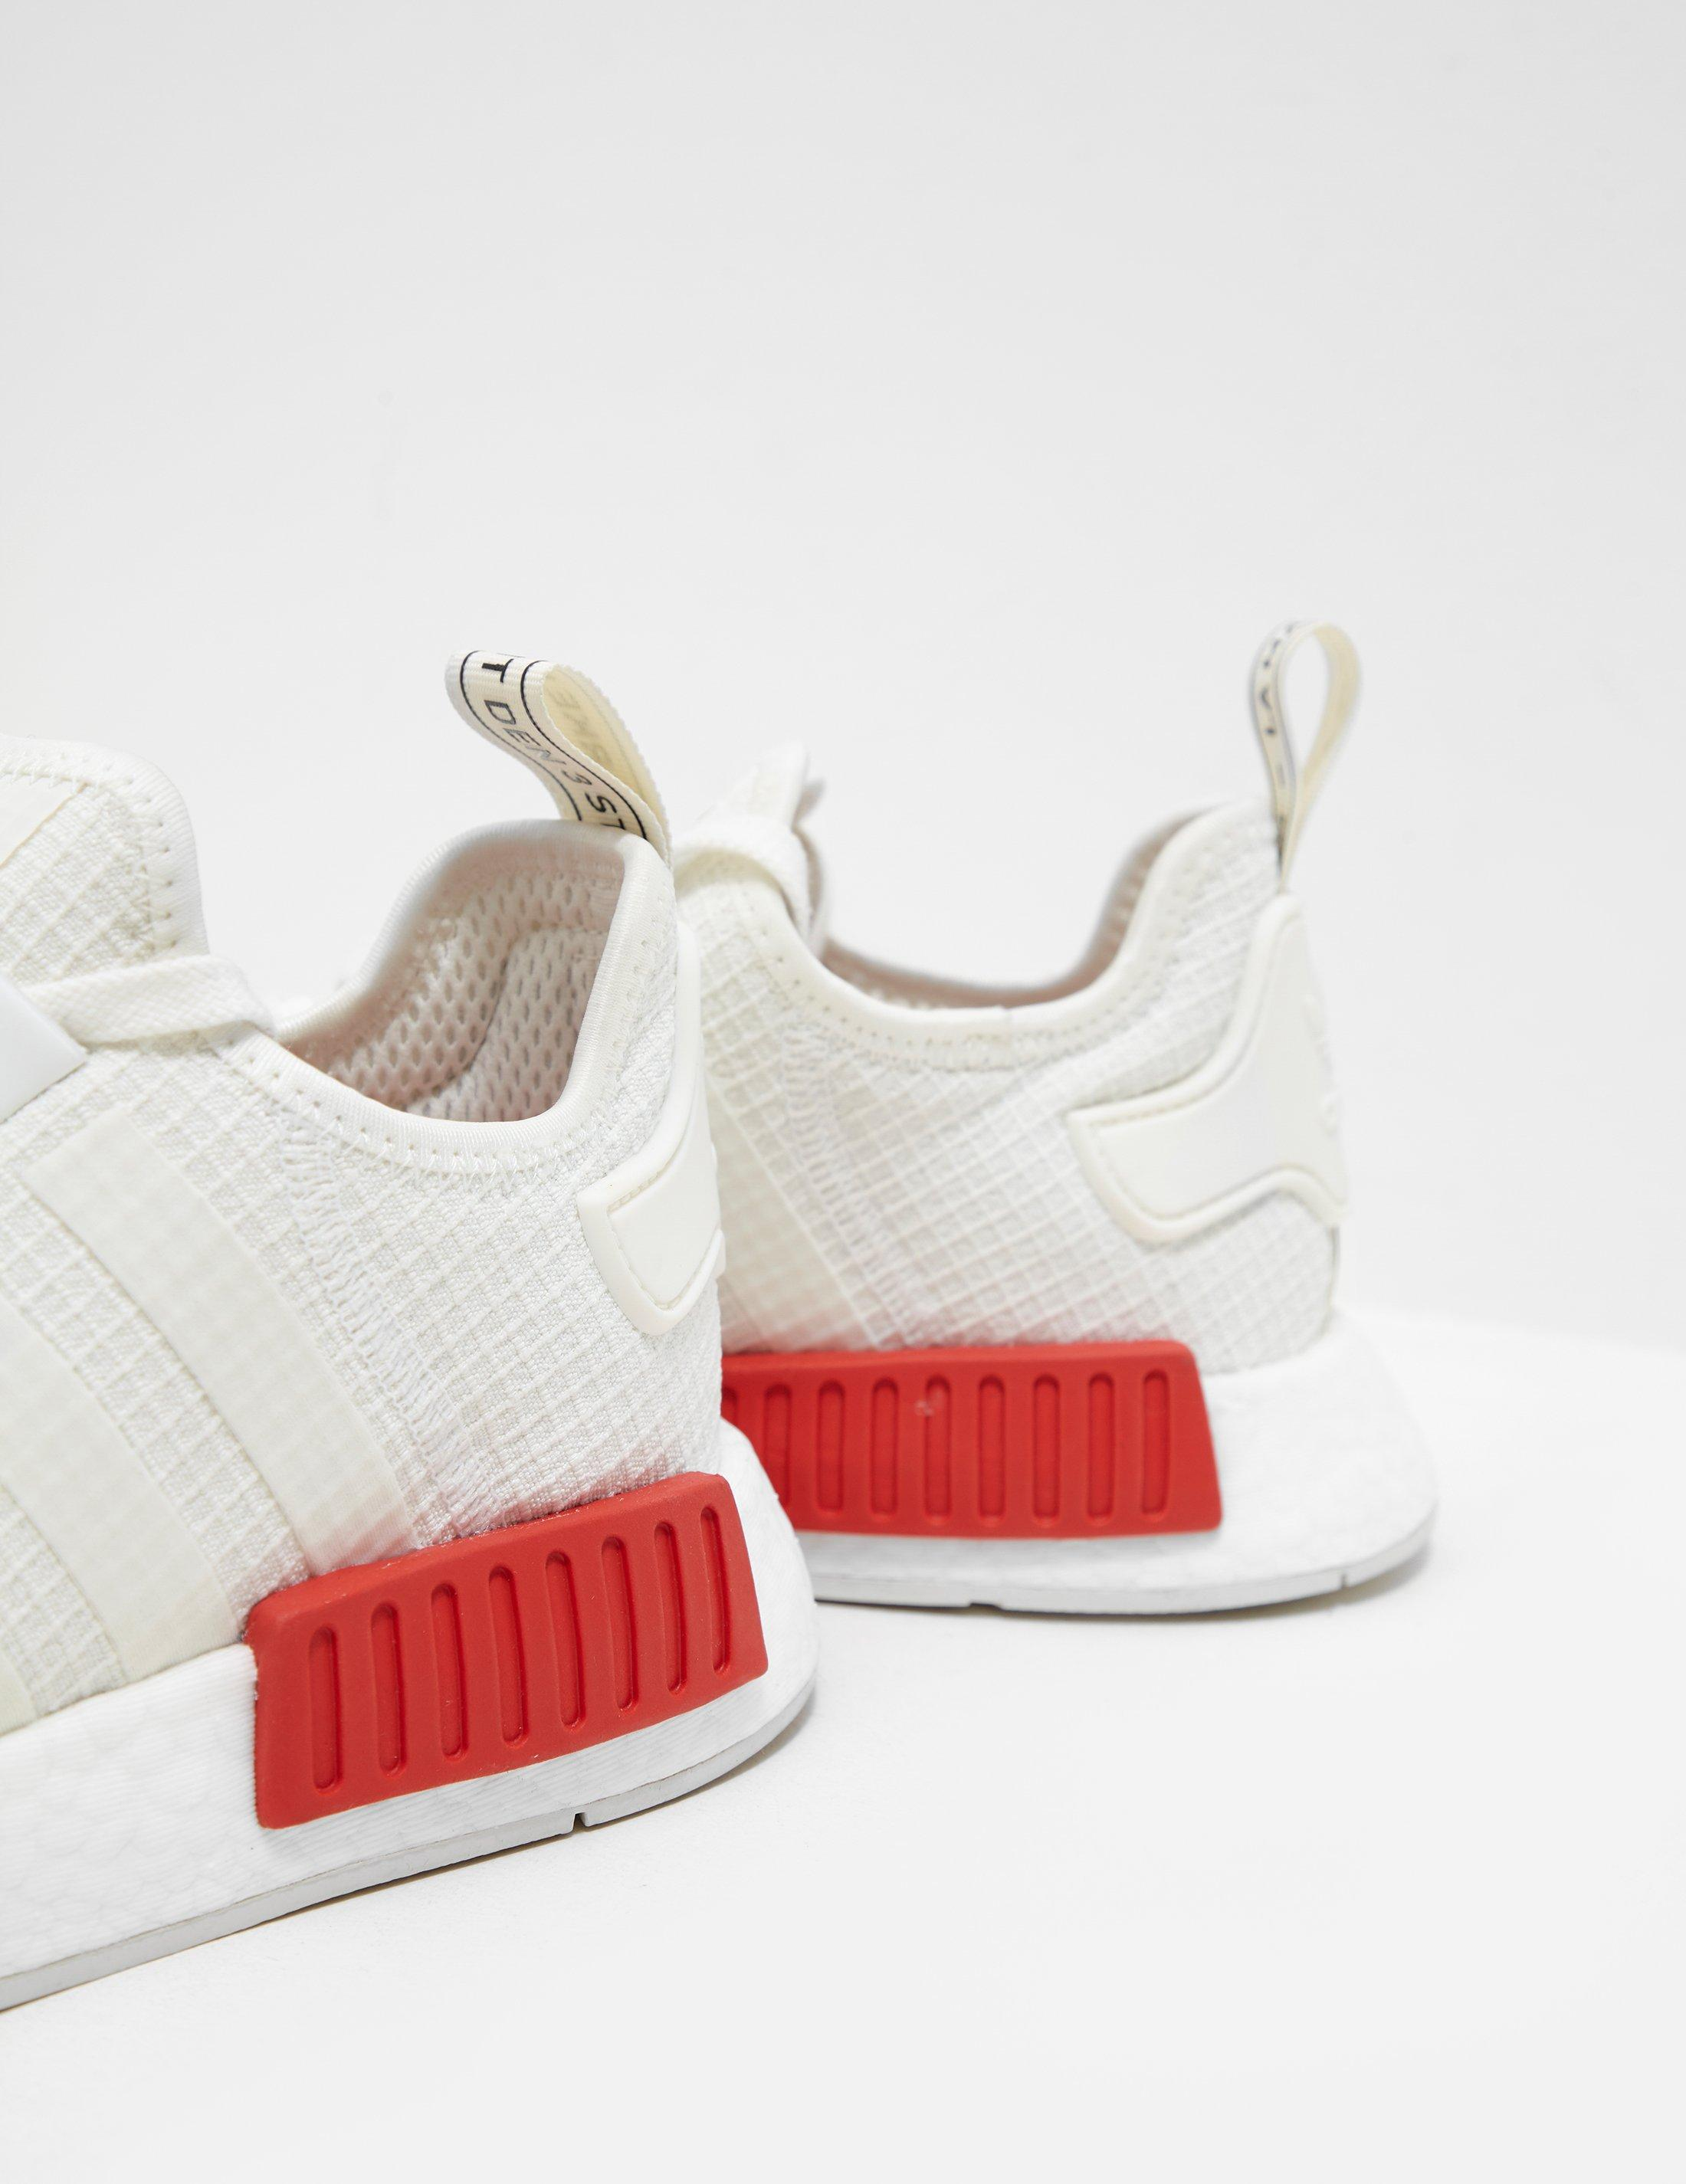 8fed81636 Adidas Originals - Nmd R1 Ripstop White for Men - Lyst. View fullscreen